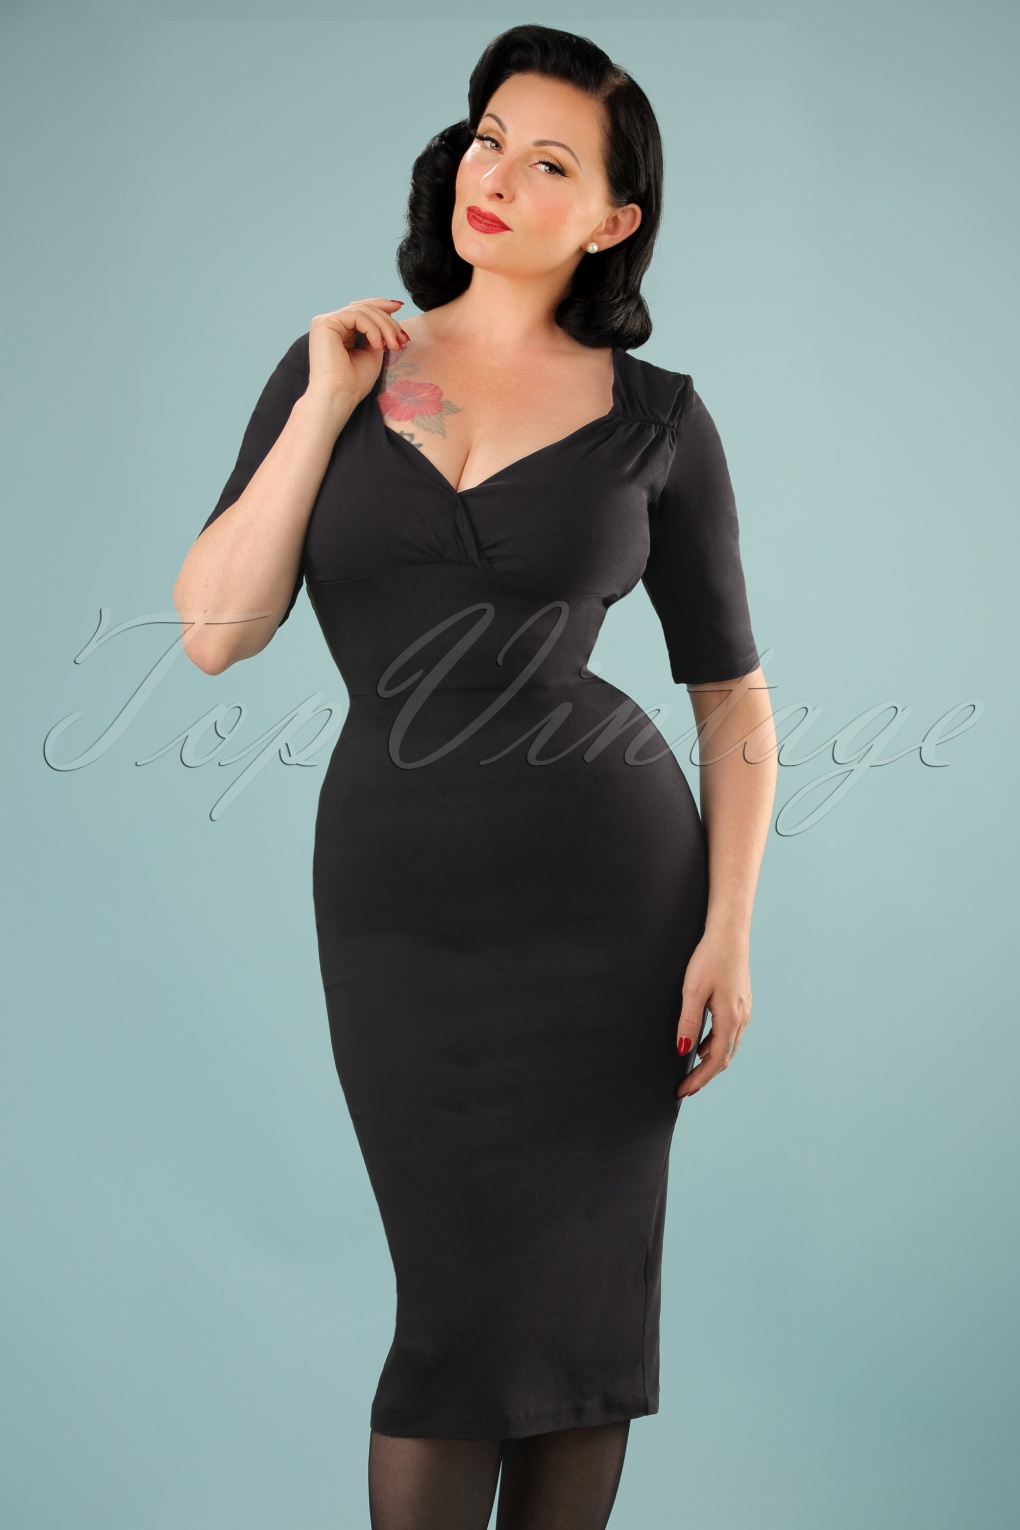 Rockabilly Dresses | Rockabilly Clothing | Viva Las Vegas 50s Trixie Doll Pencil Dress in Black £49.34 AT vintagedancer.com